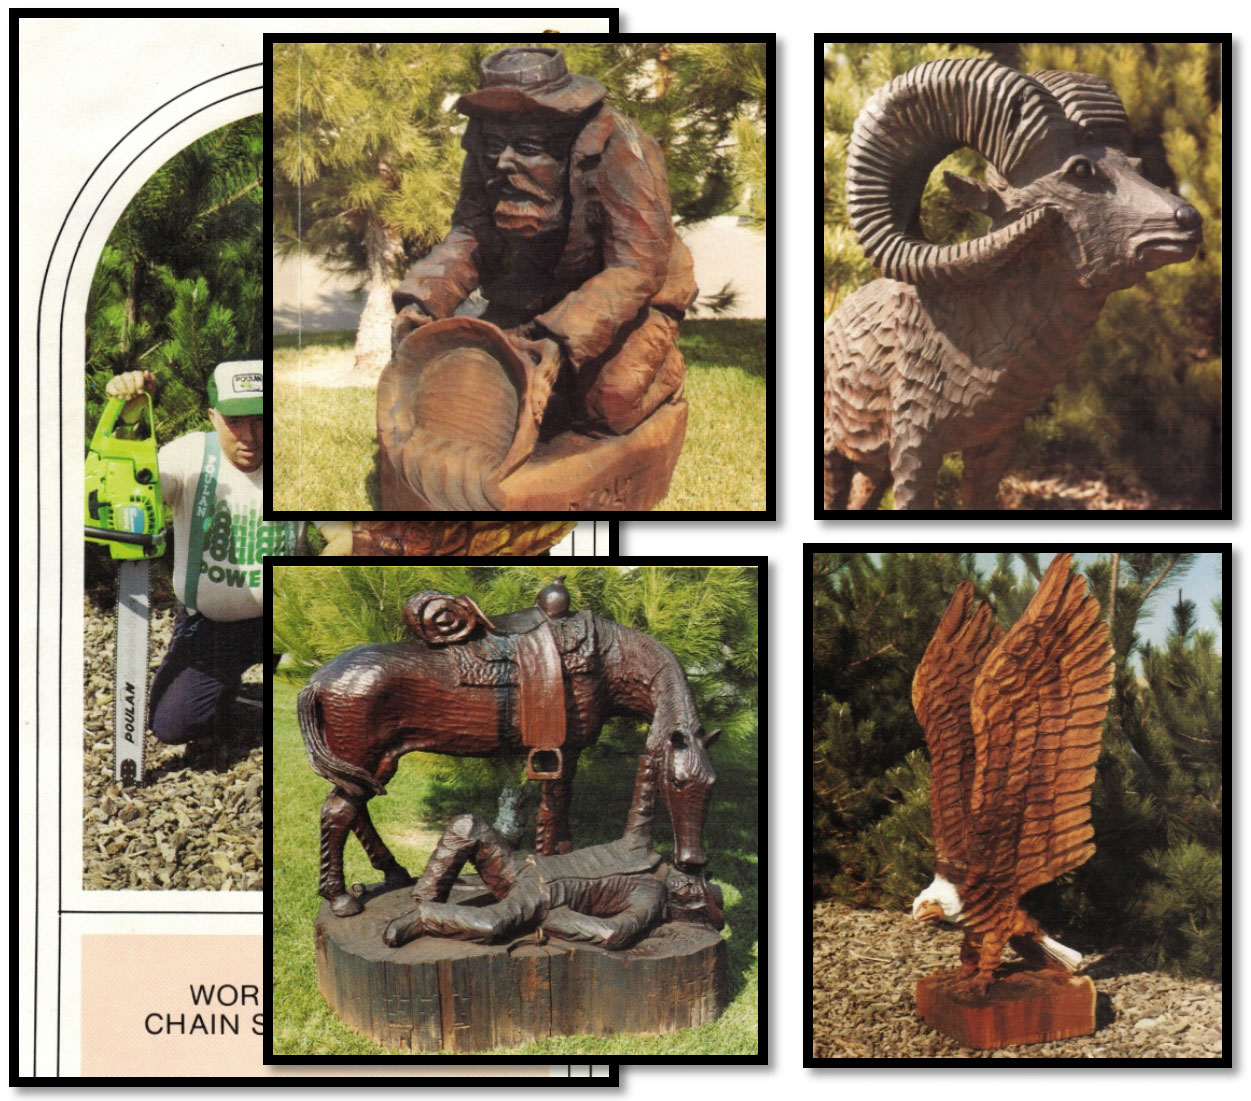 Chain Saw wood carvings - Don C.